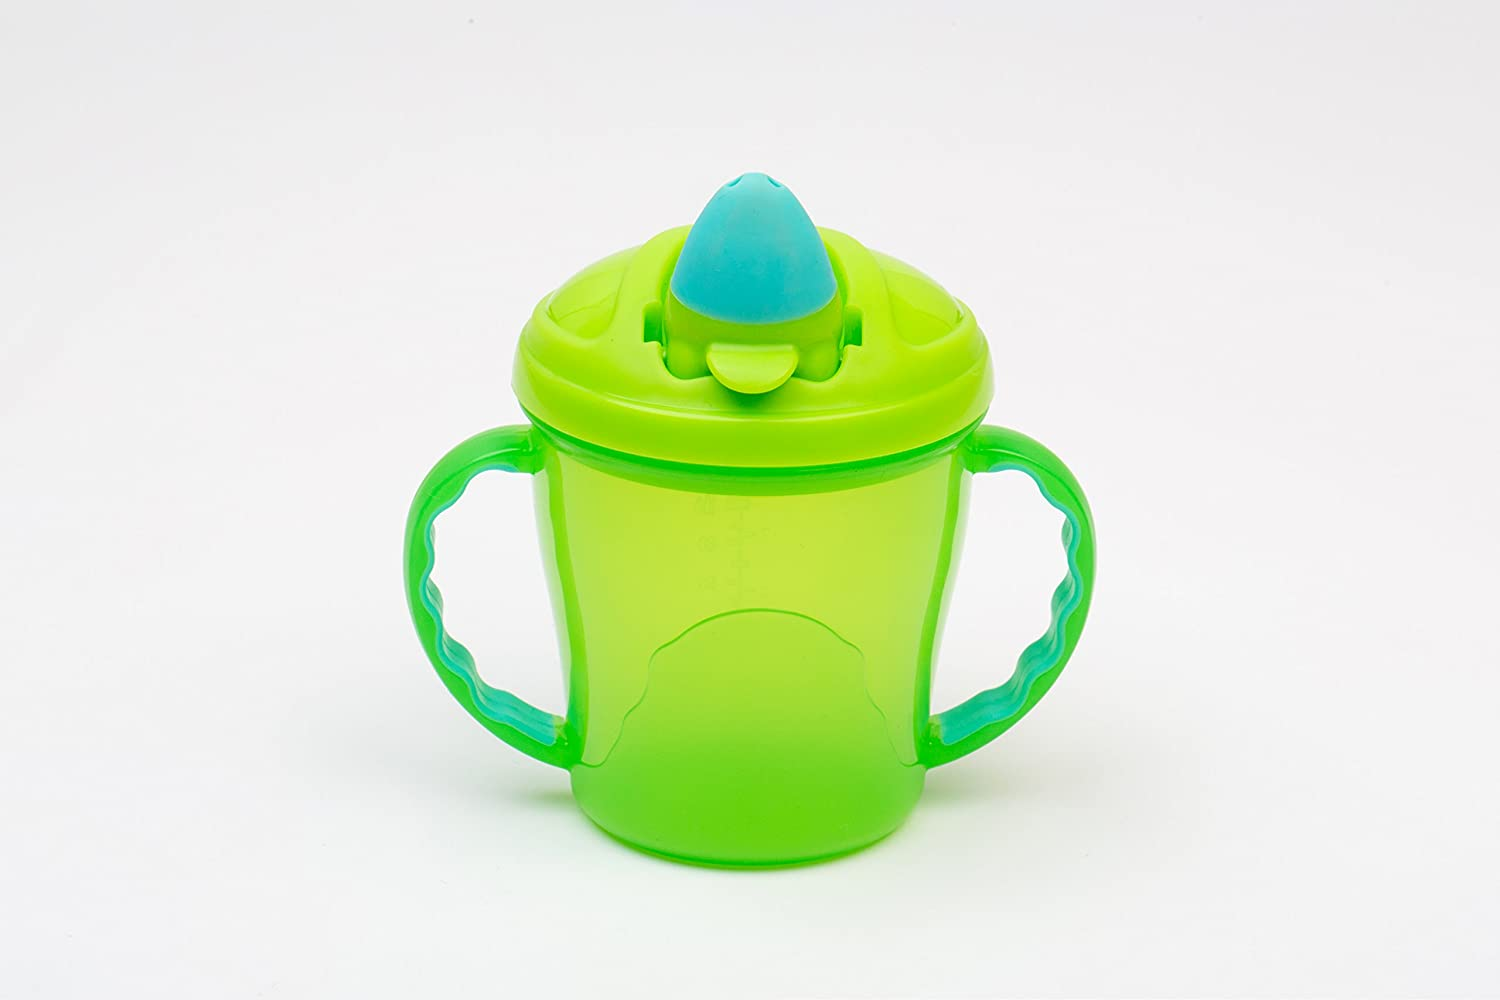 Vital Baby Free Flow Cup, Green and Turquoise 443562